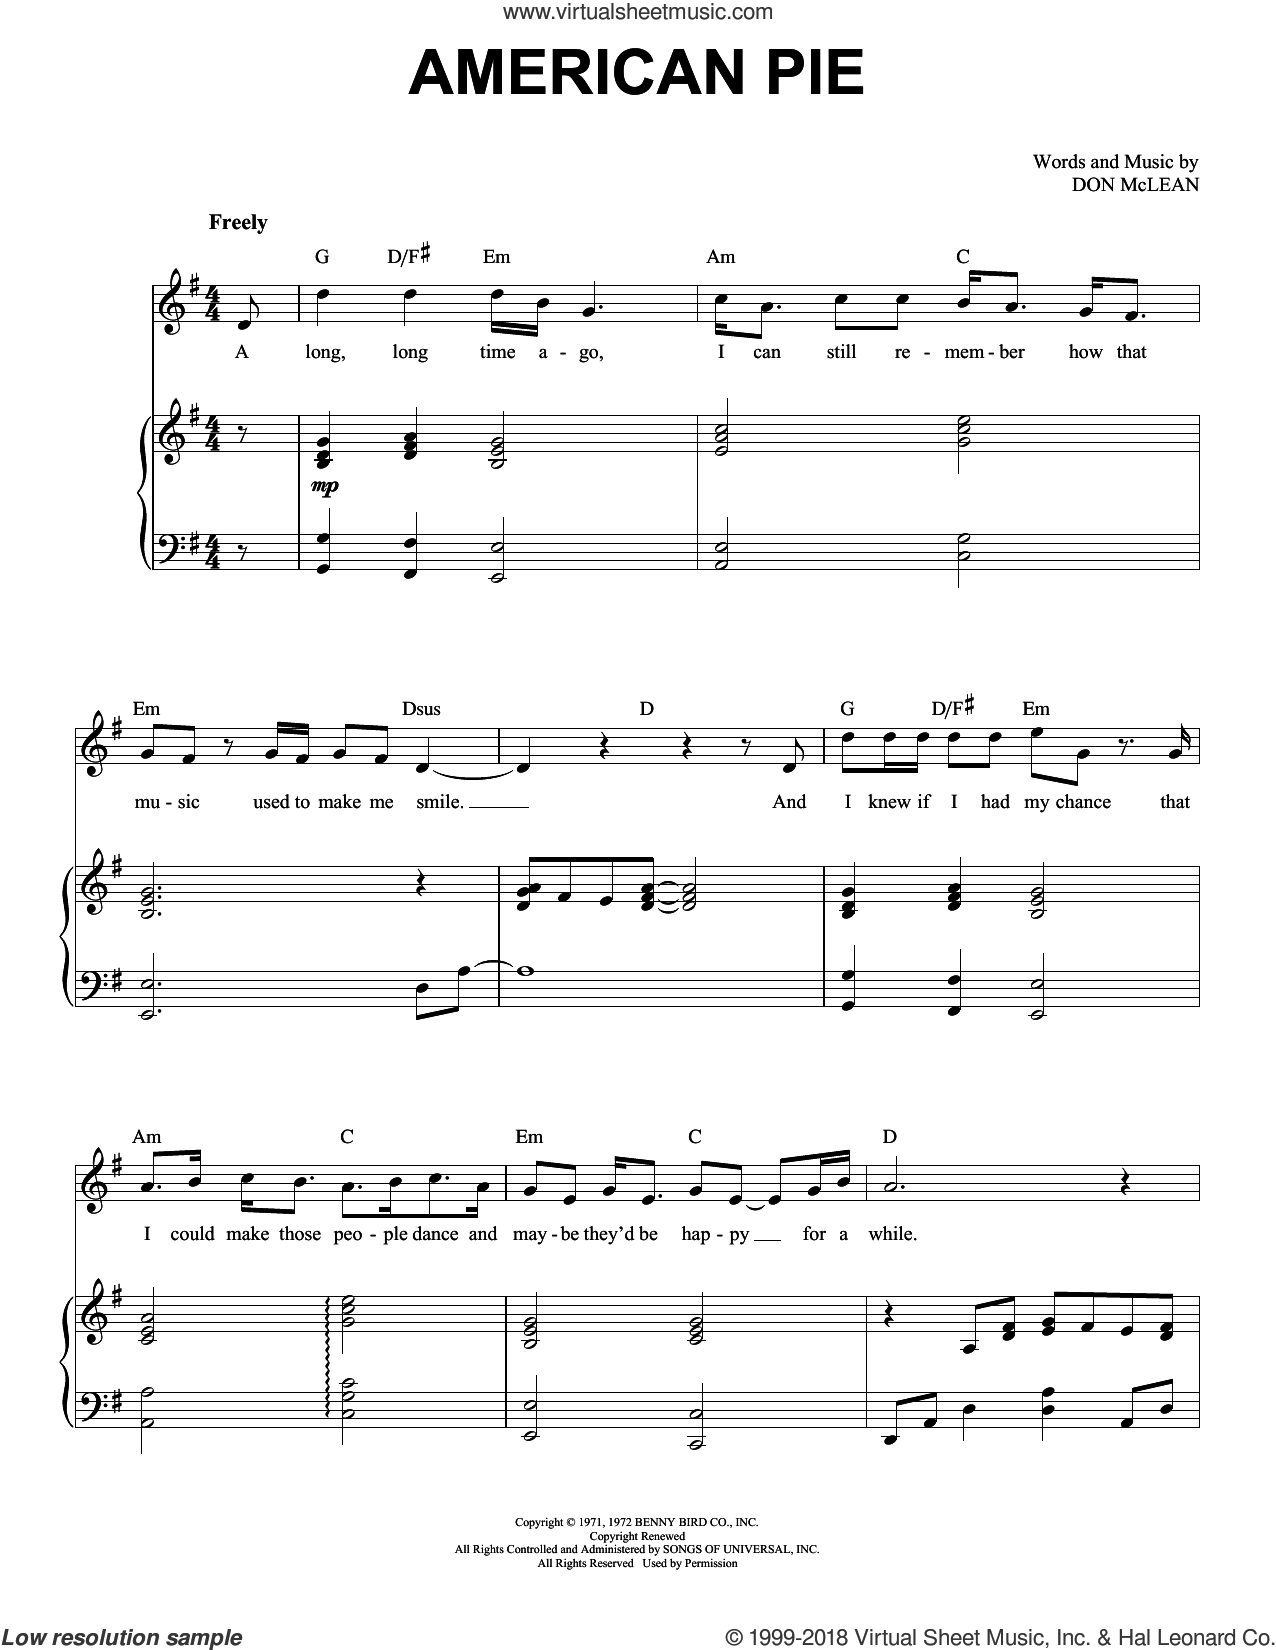 American Pie sheet music for voice and piano by Don McLean, intermediate skill level